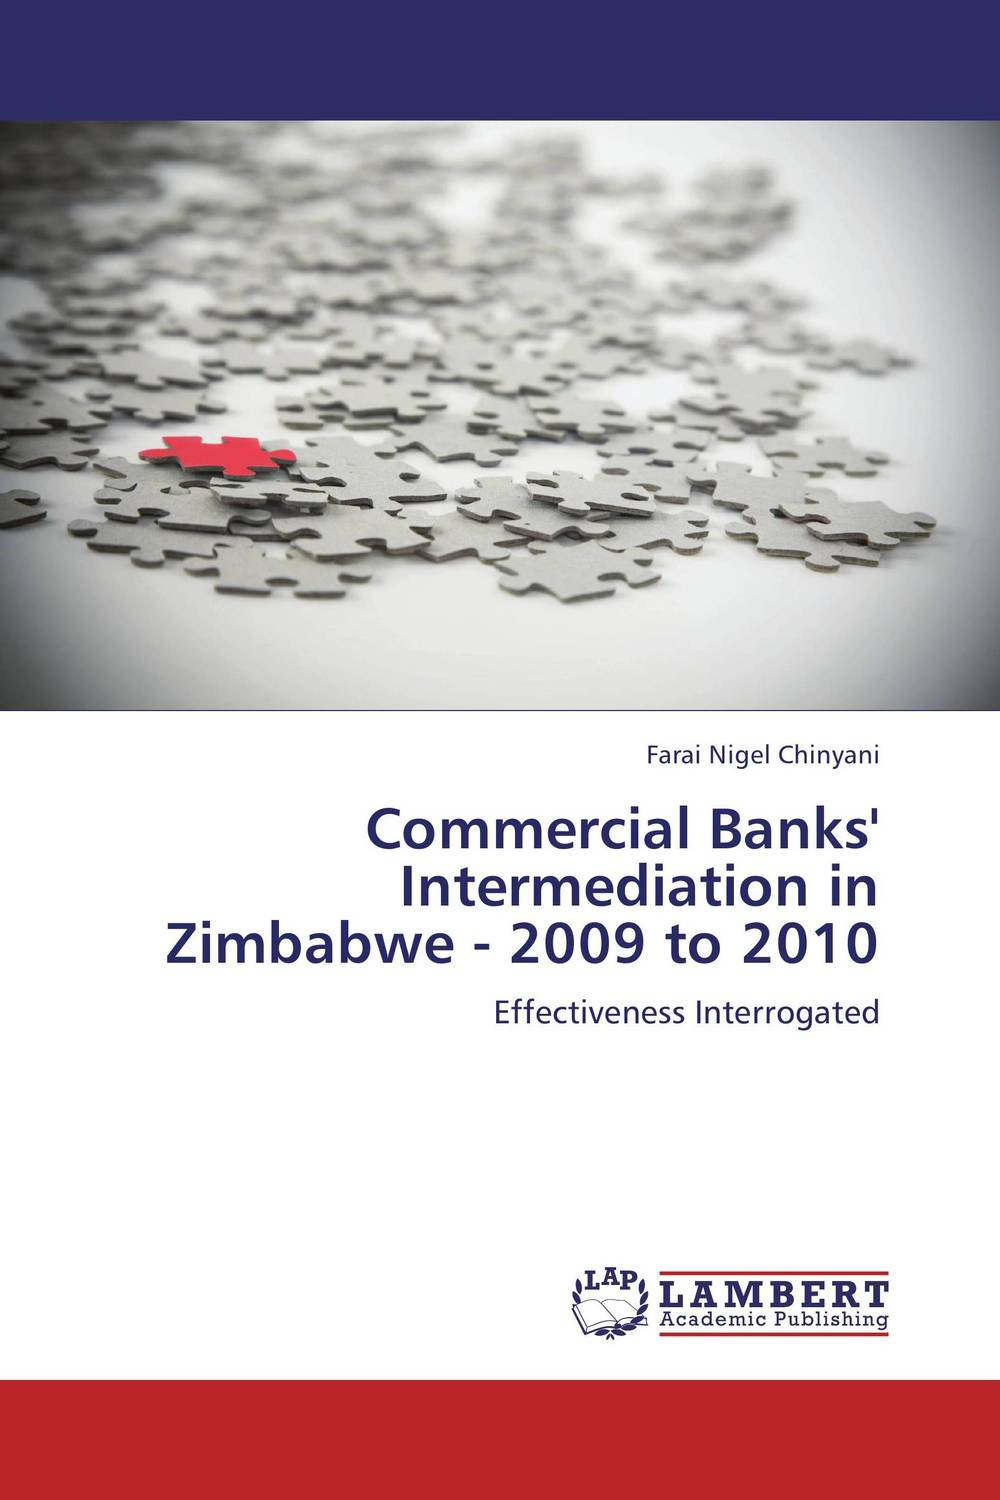 Commercial Banks' Intermediation in Zimbabwe - 2009 to 2010 ways of curbing tax evasion in zimbabwe